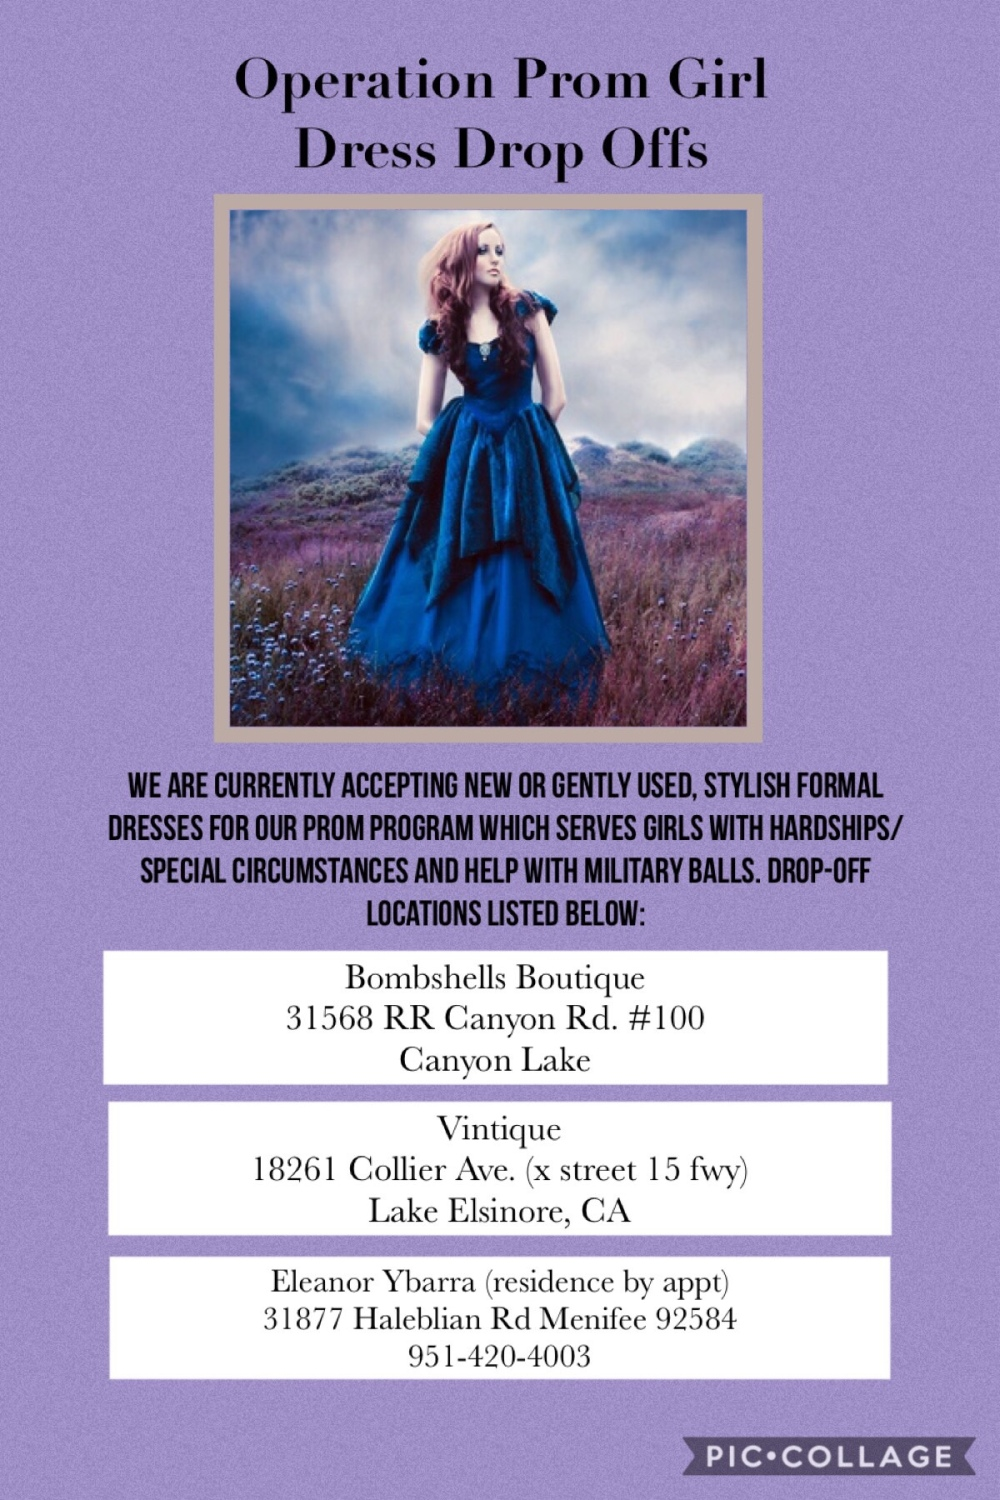 28fb1e007f83 You may donate new or gently used stylish dresses, accessories, fancy  shoes, makeup items, raffle items, services, or gift cards and in-kind  donations to ...